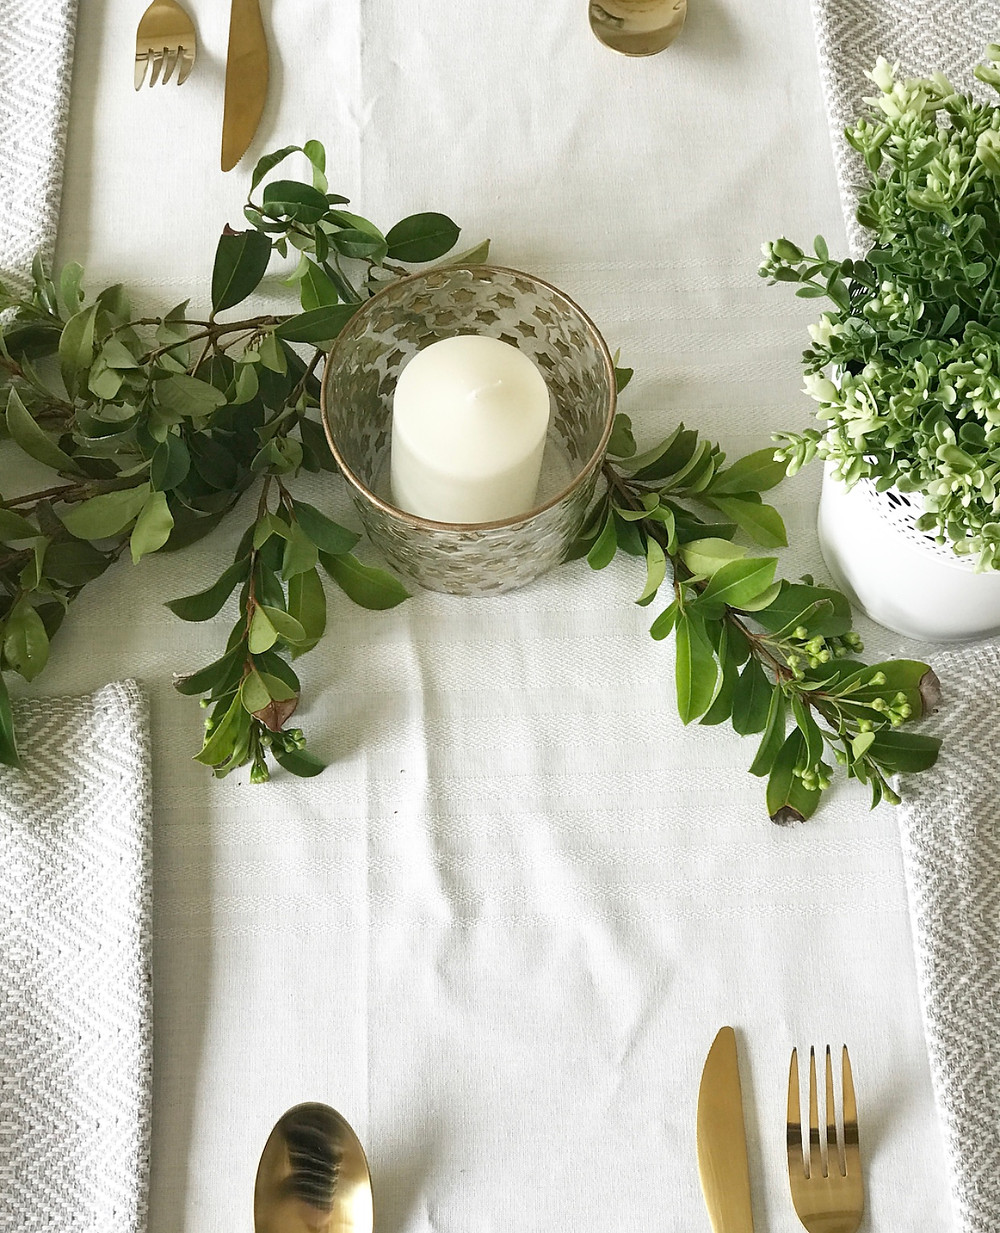 Candles and table decor